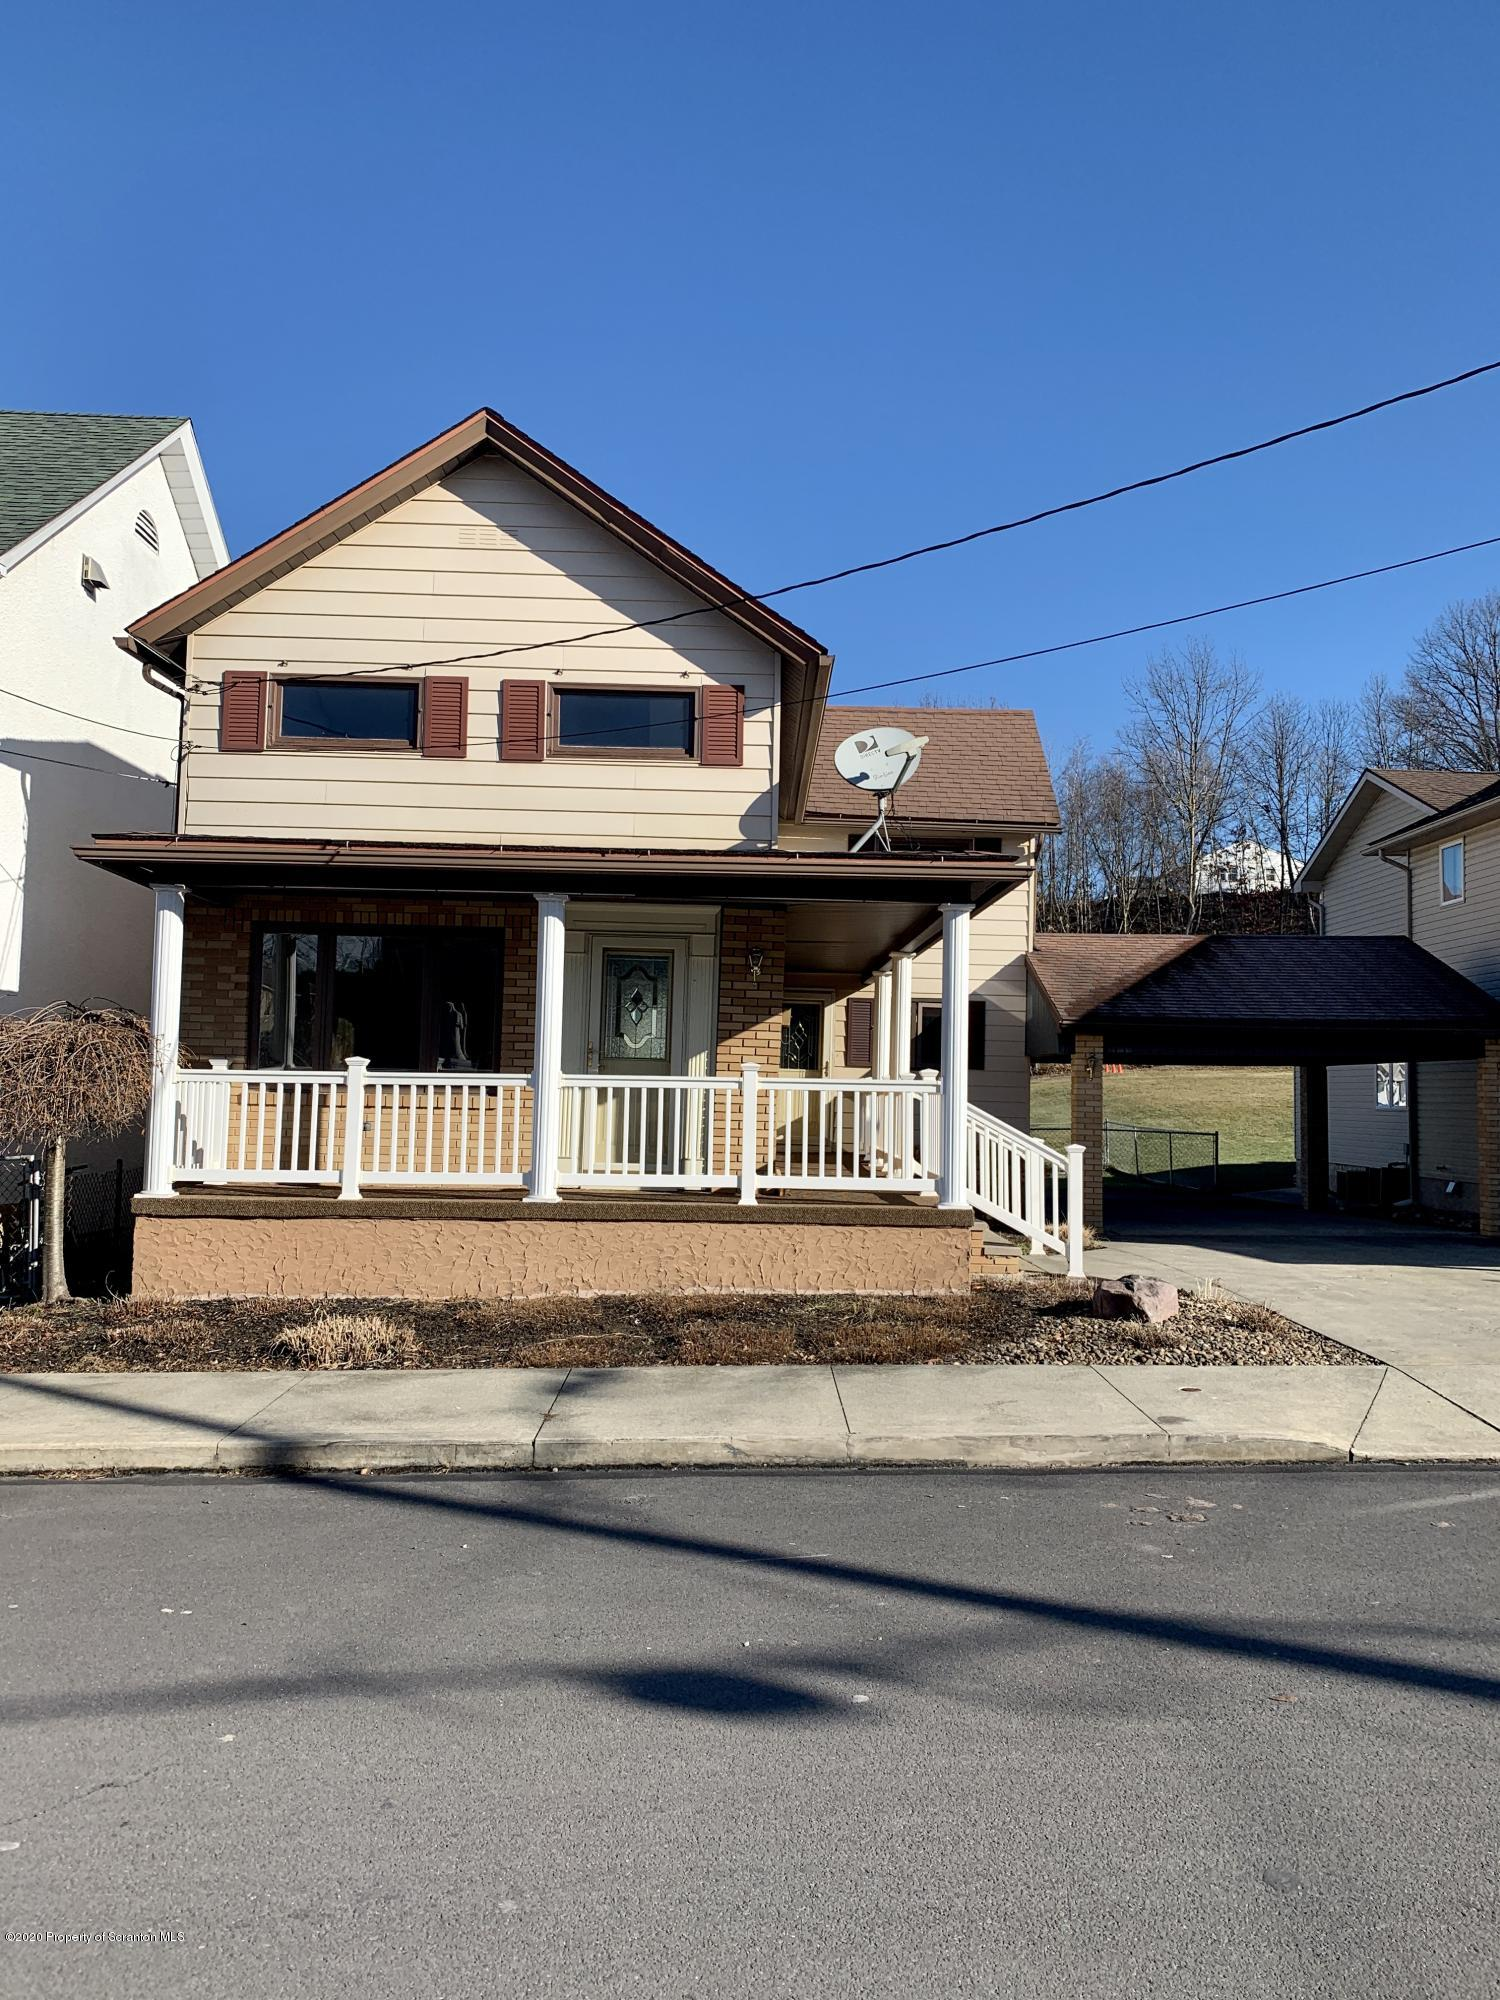 331 Vine St, Old Forge, Pennsylvania 18518, 3 Bedrooms Bedrooms, 6 Rooms Rooms,1 BathroomBathrooms,Single Family,For Sale,Vine,20-48